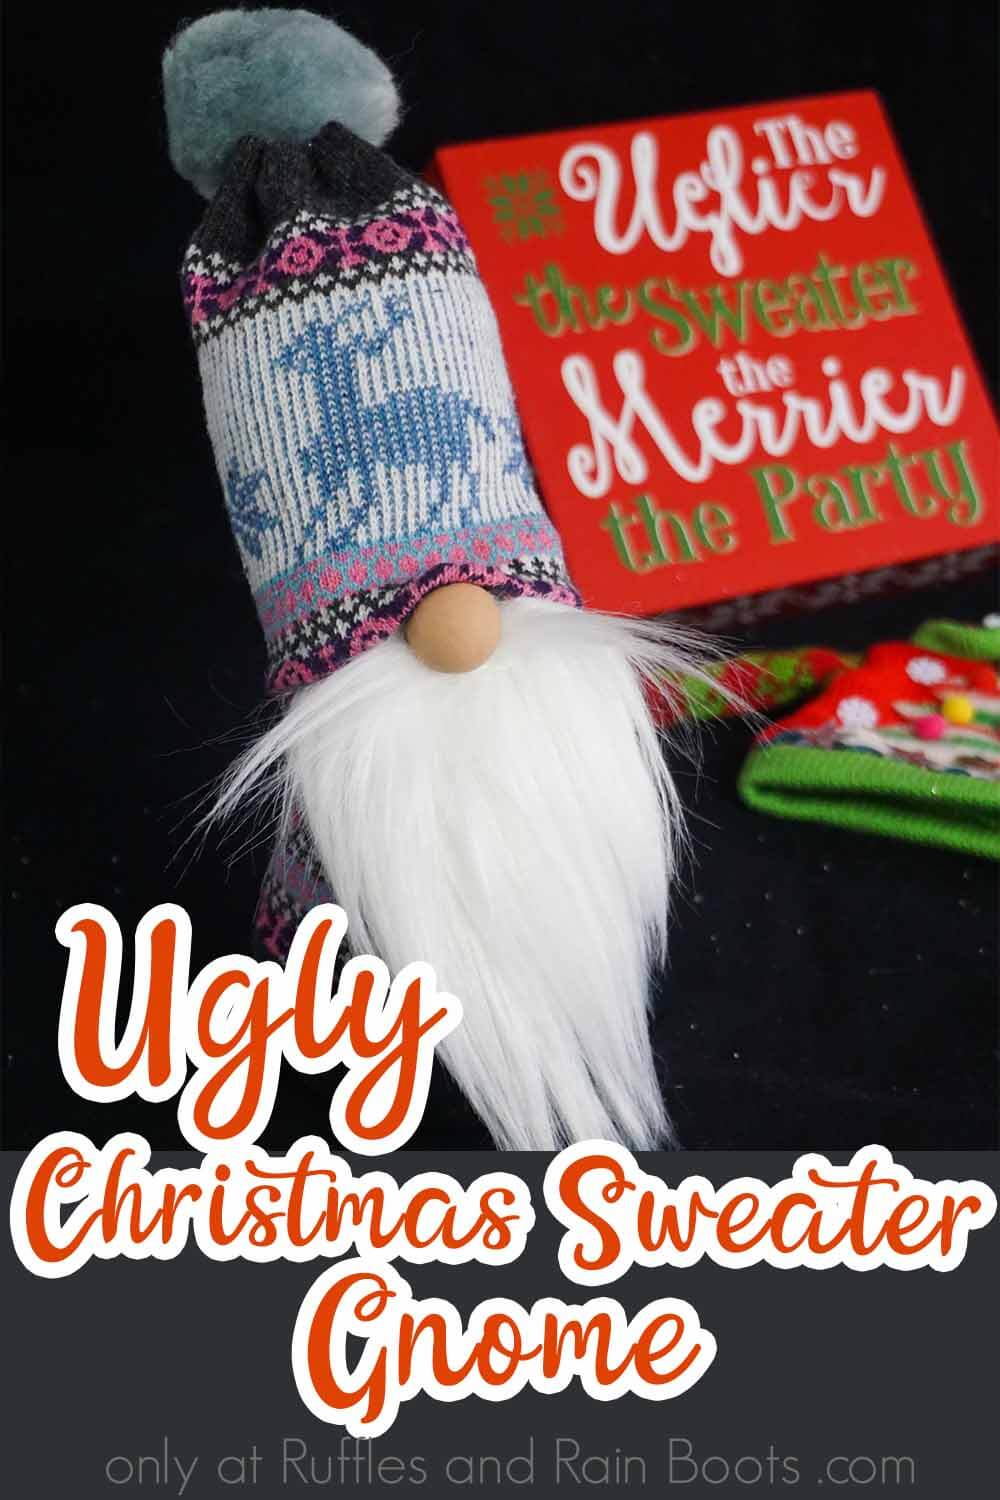 ugly christmas sweater sock gnome on a black background with text which reads ugly christmas sweater gnome